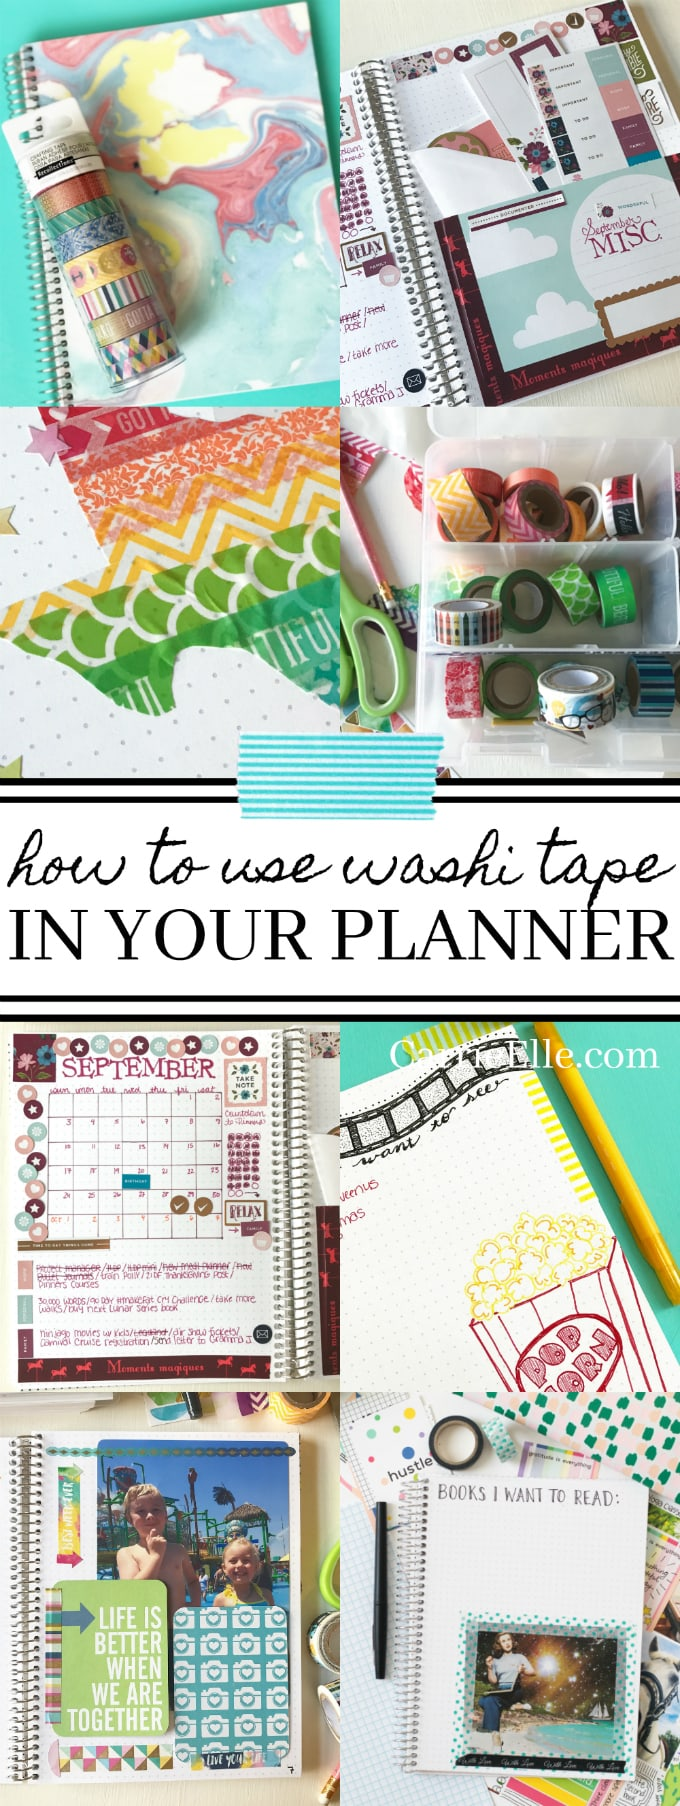 Washi Tape Planner Ideas